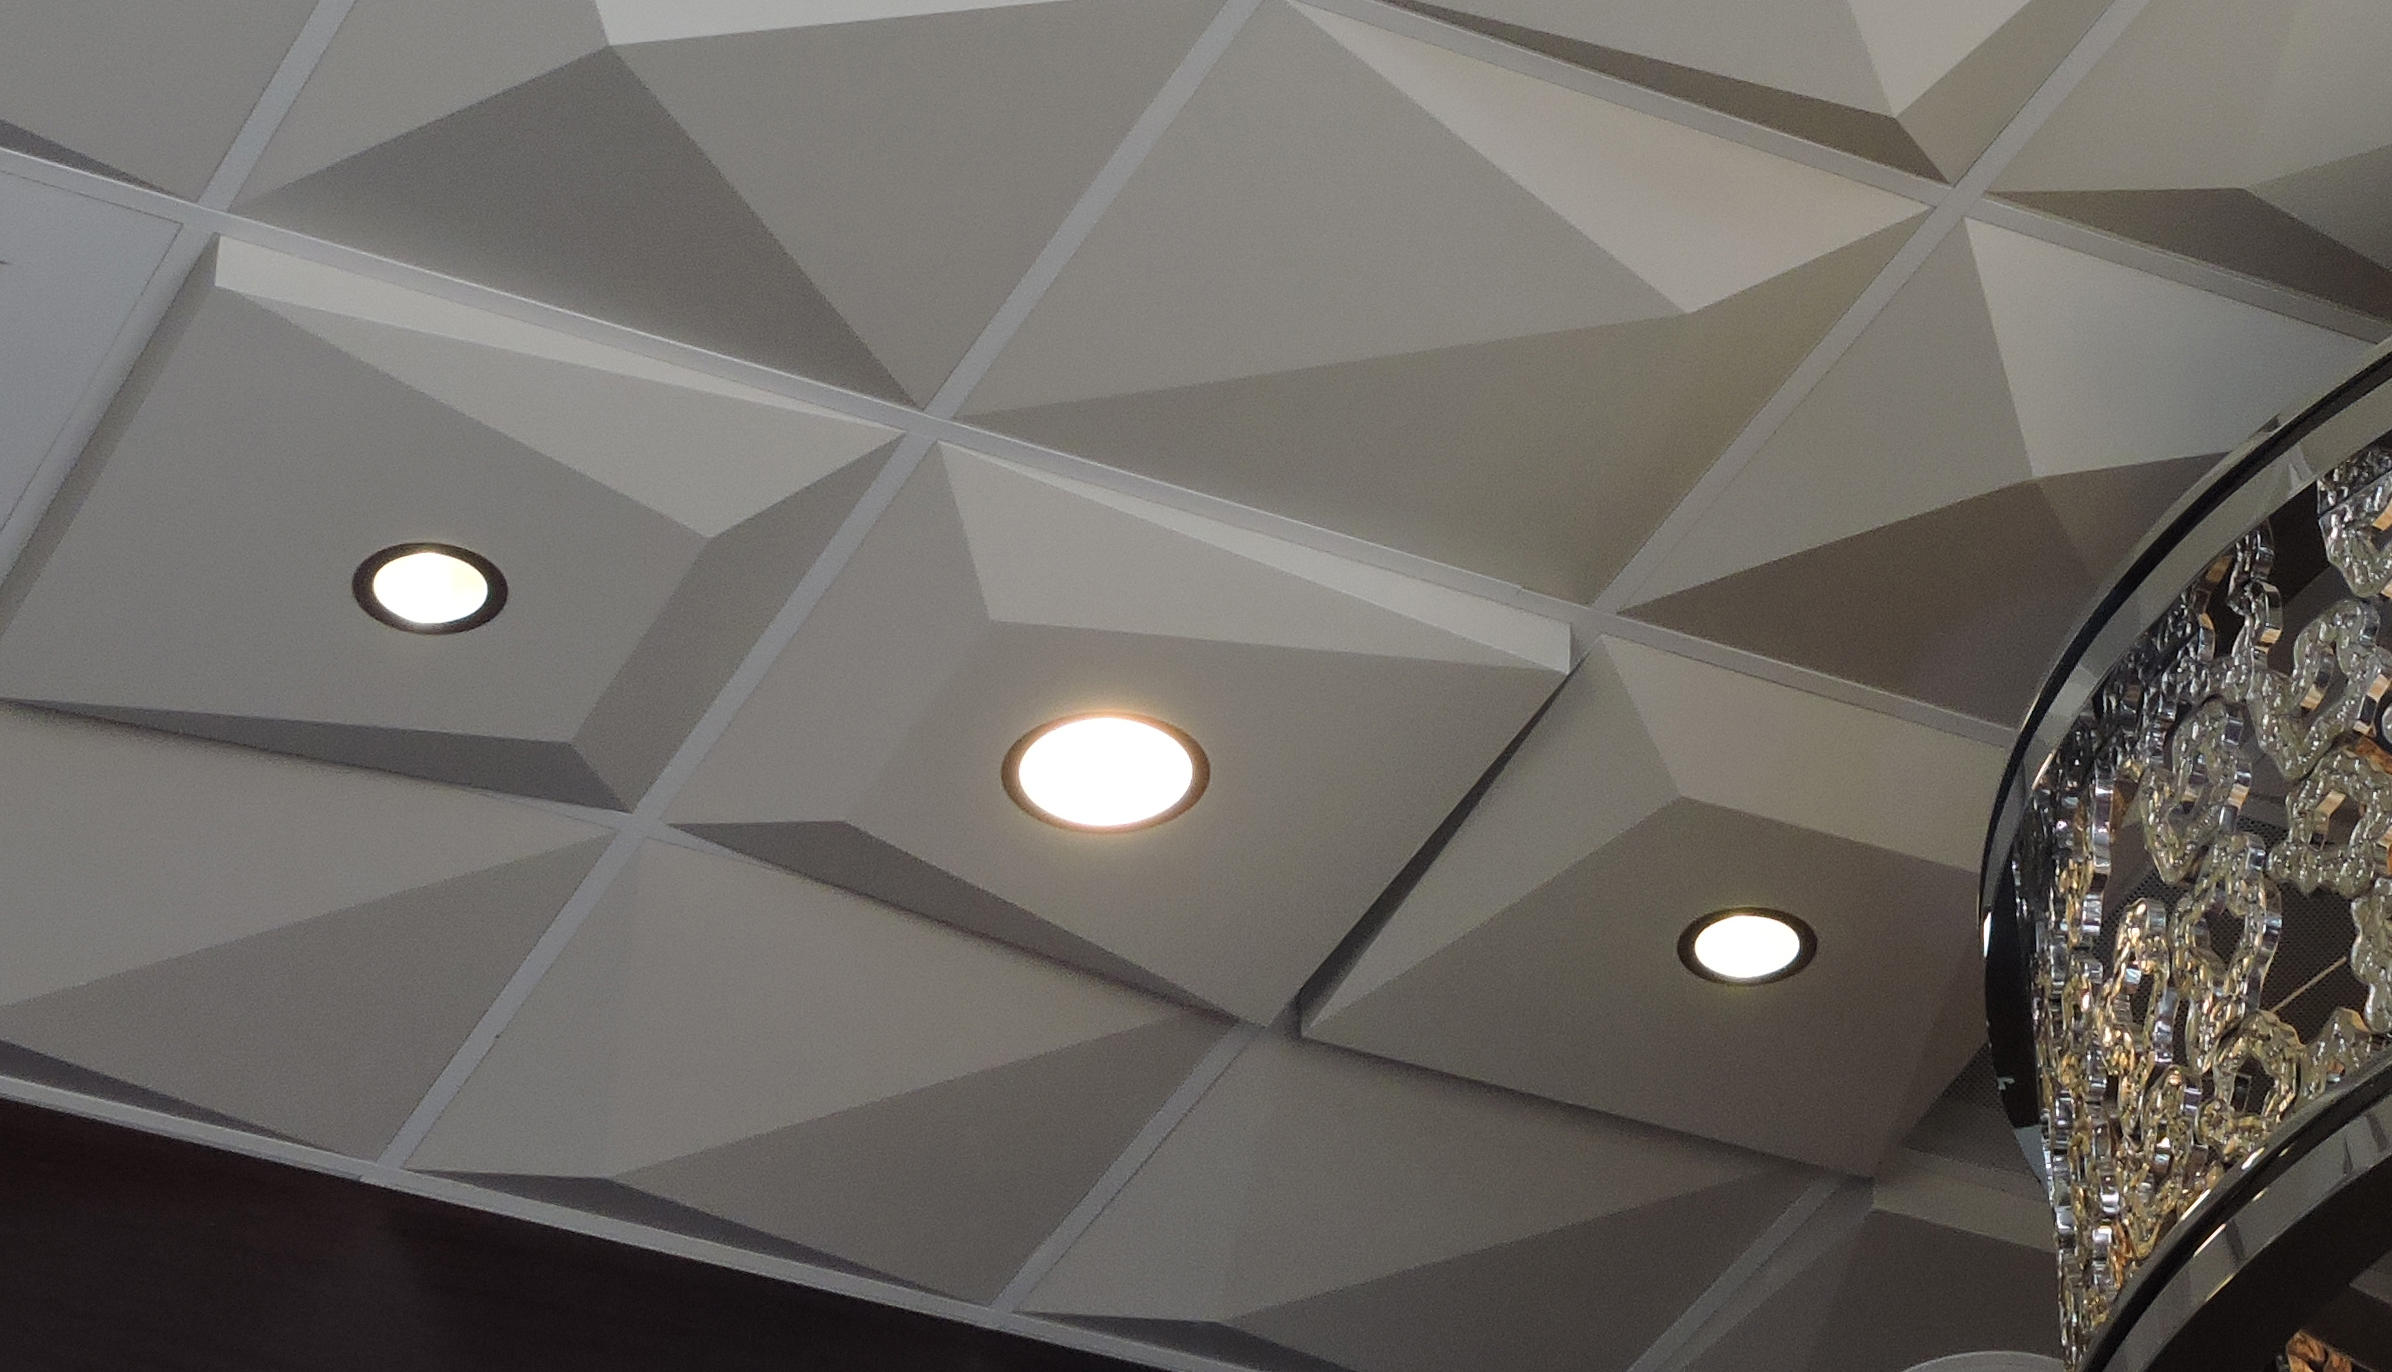 Pyramid utility ceiling tile by above view inc mineral composite panels